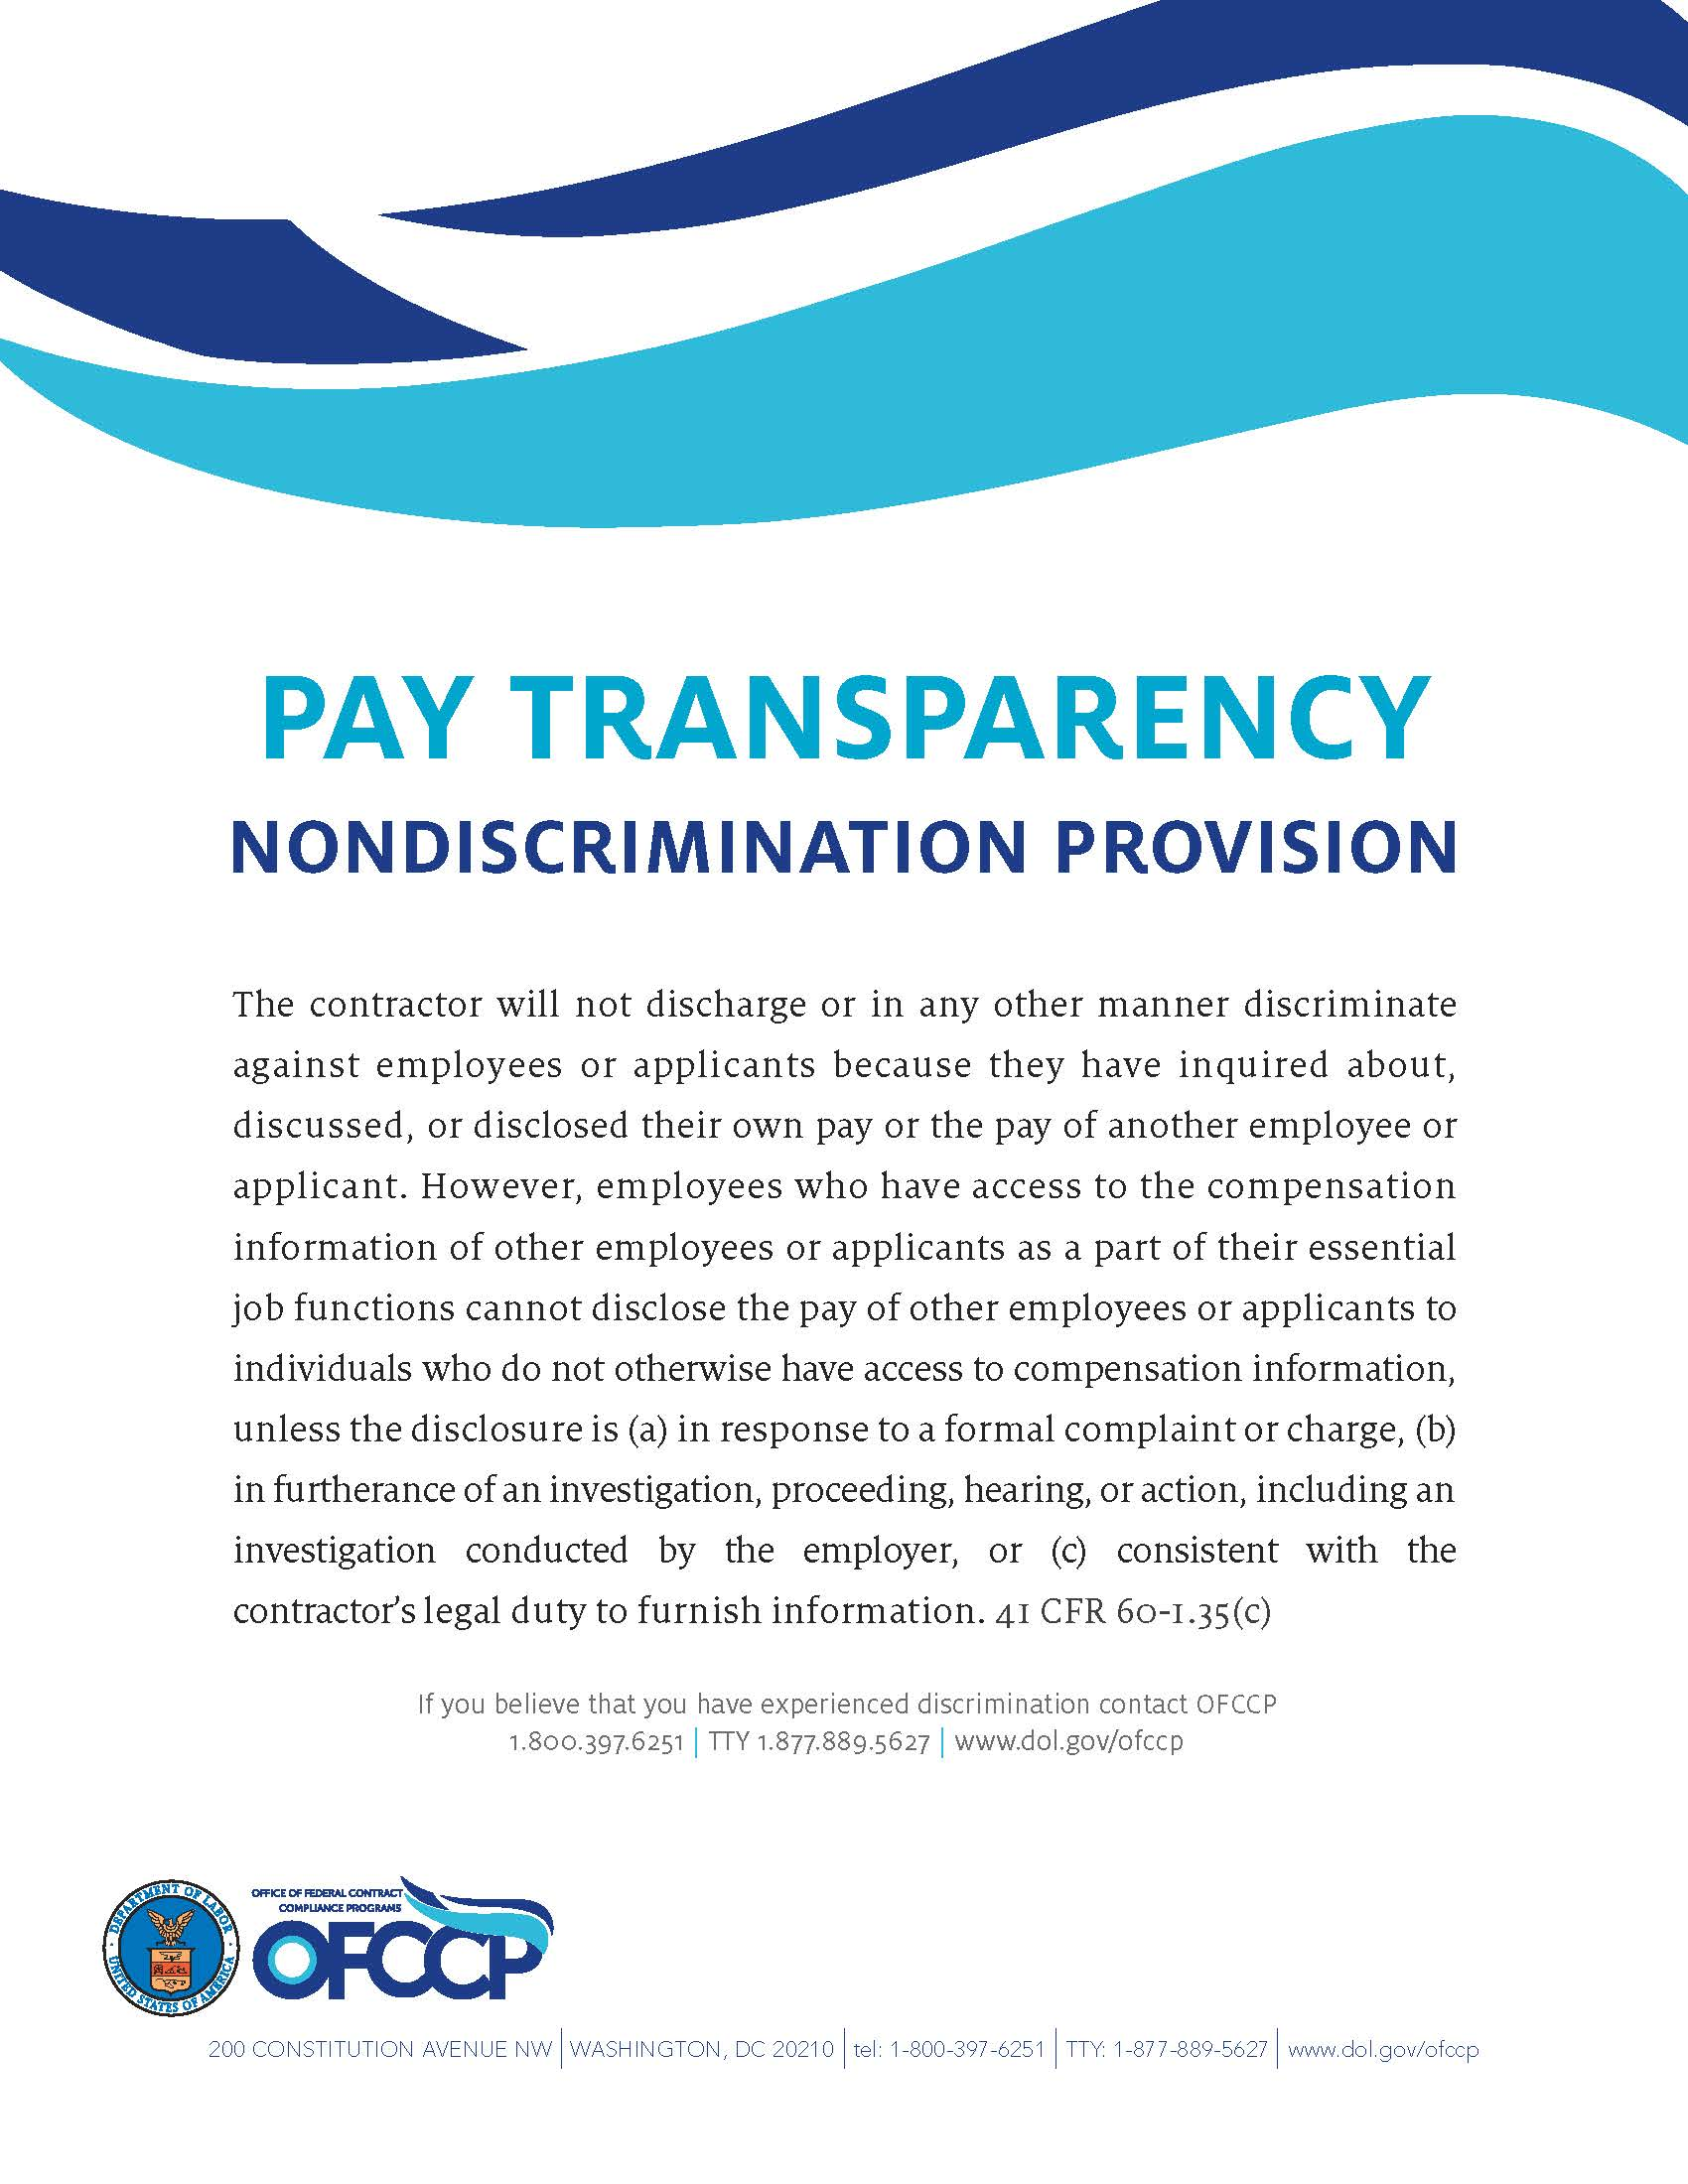 Nondiscrimination Provision